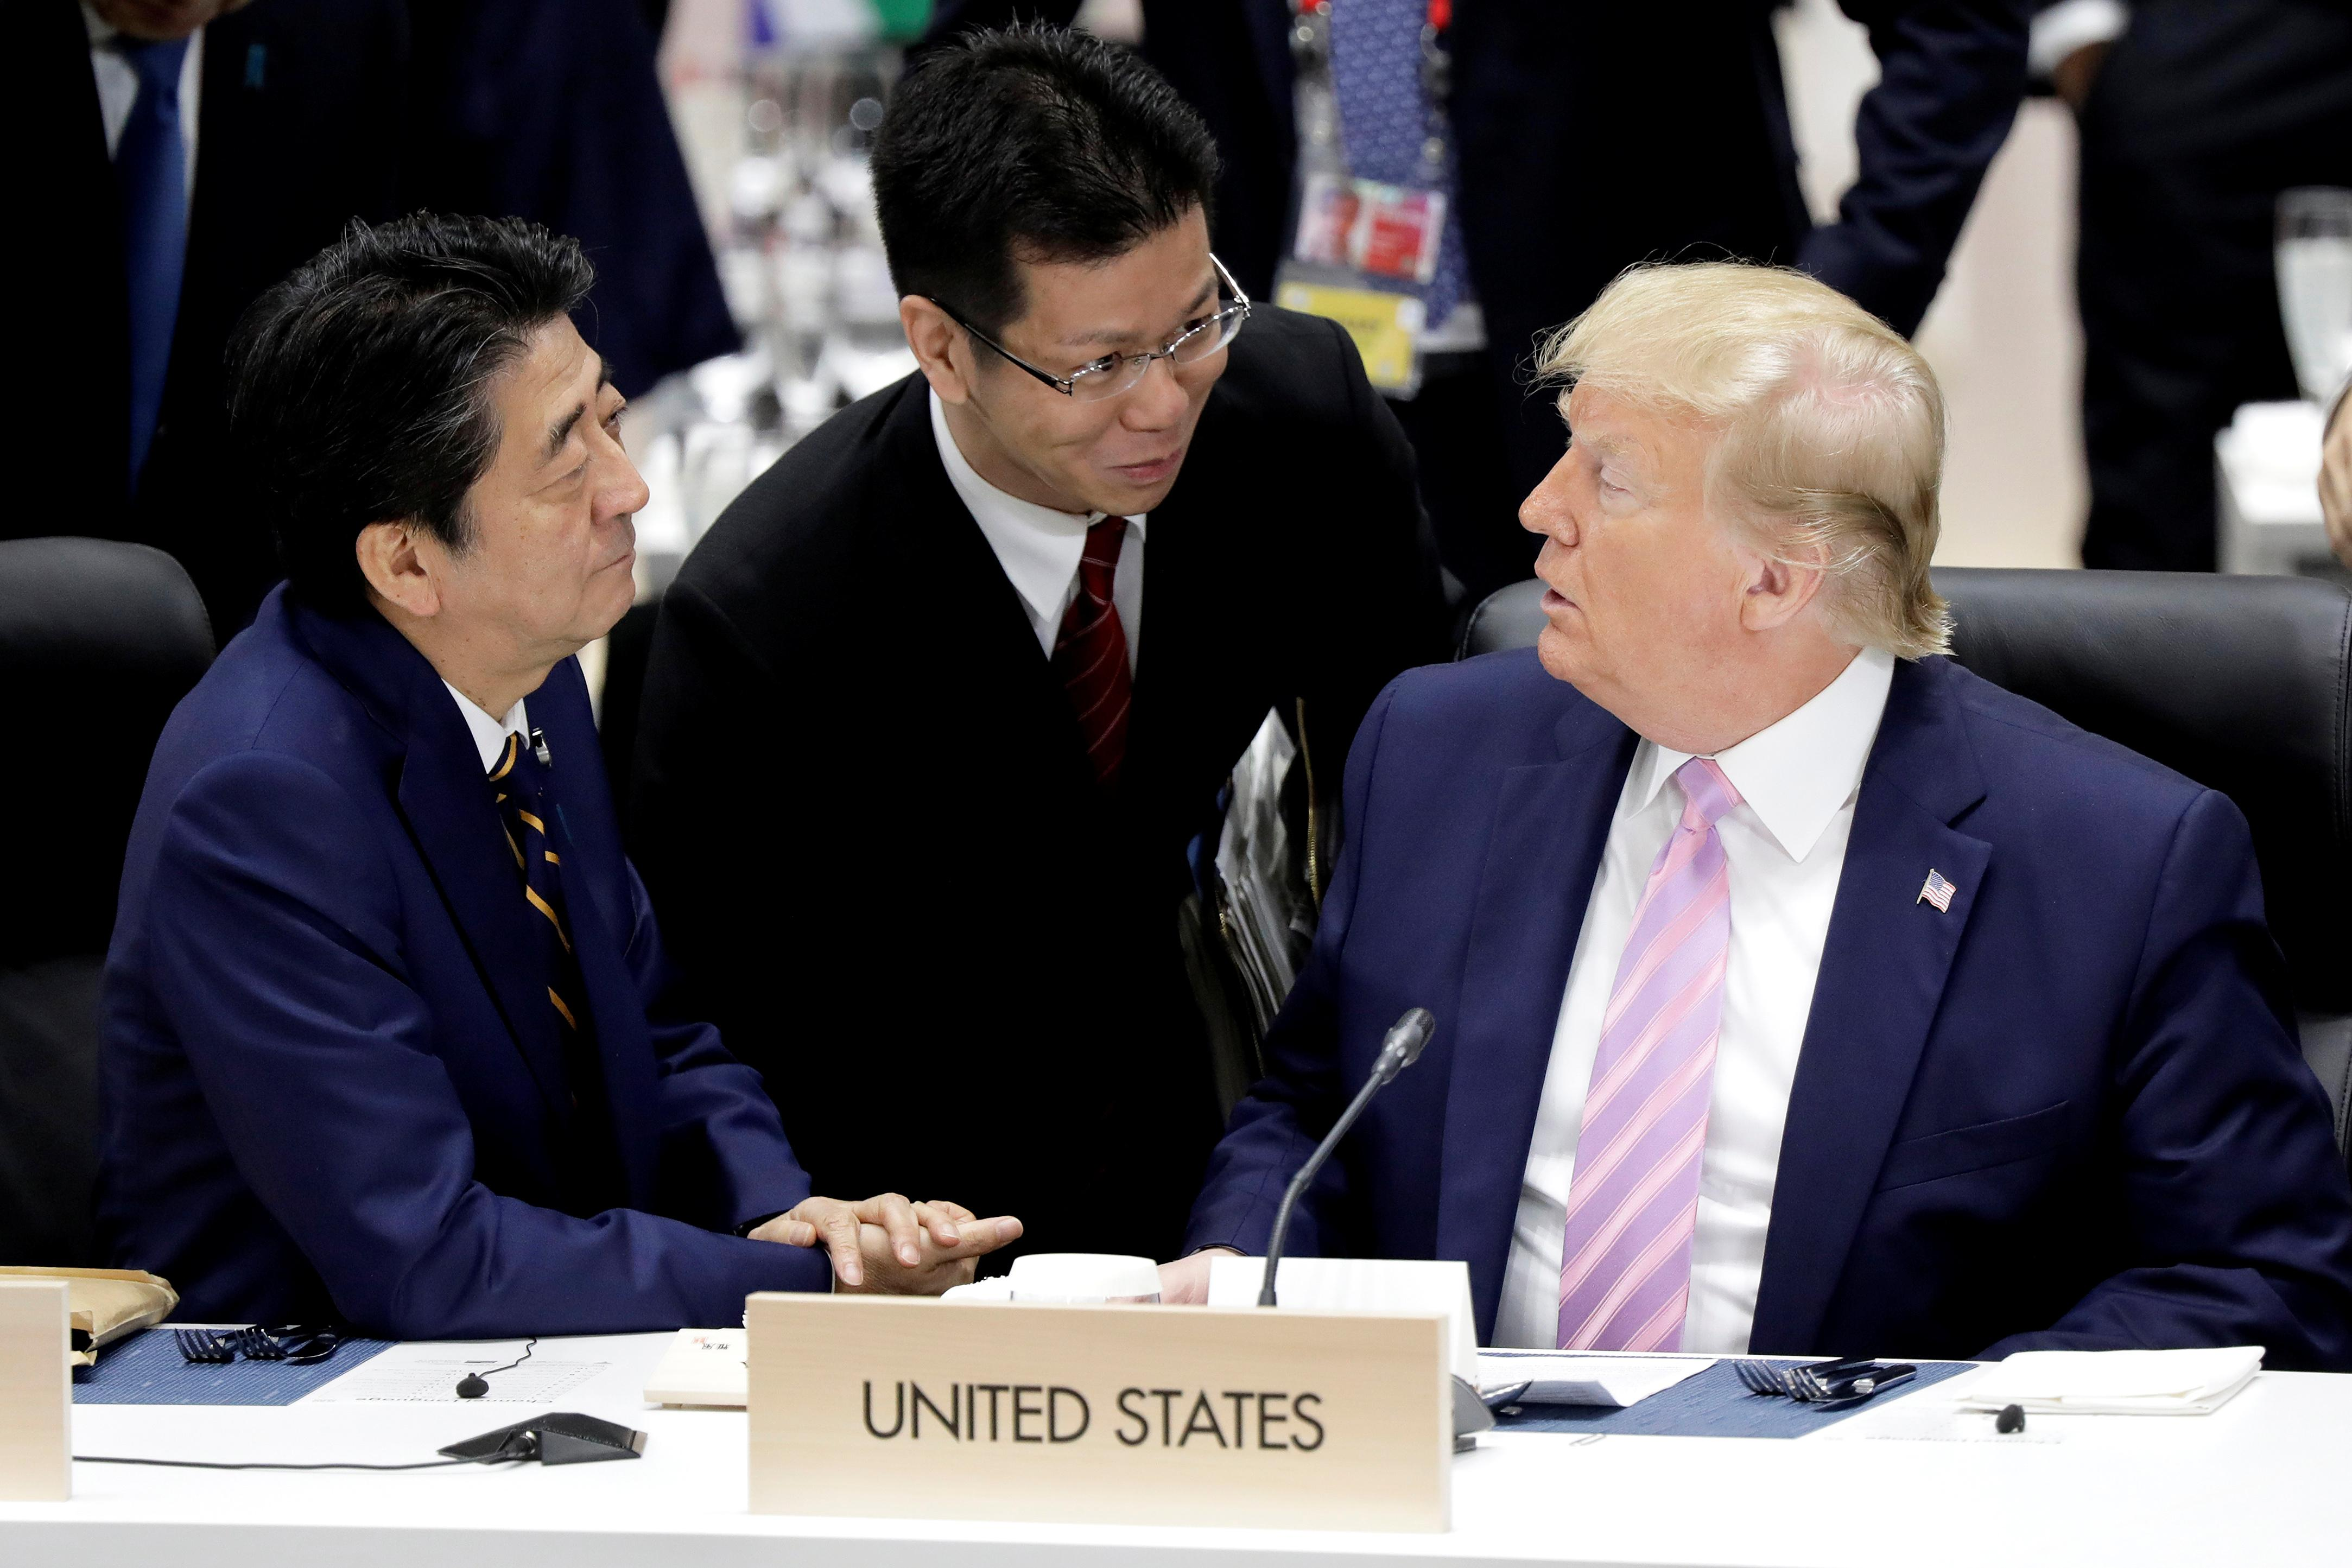 Trump says 'unfair' defence treaty with Japan needs to be changed